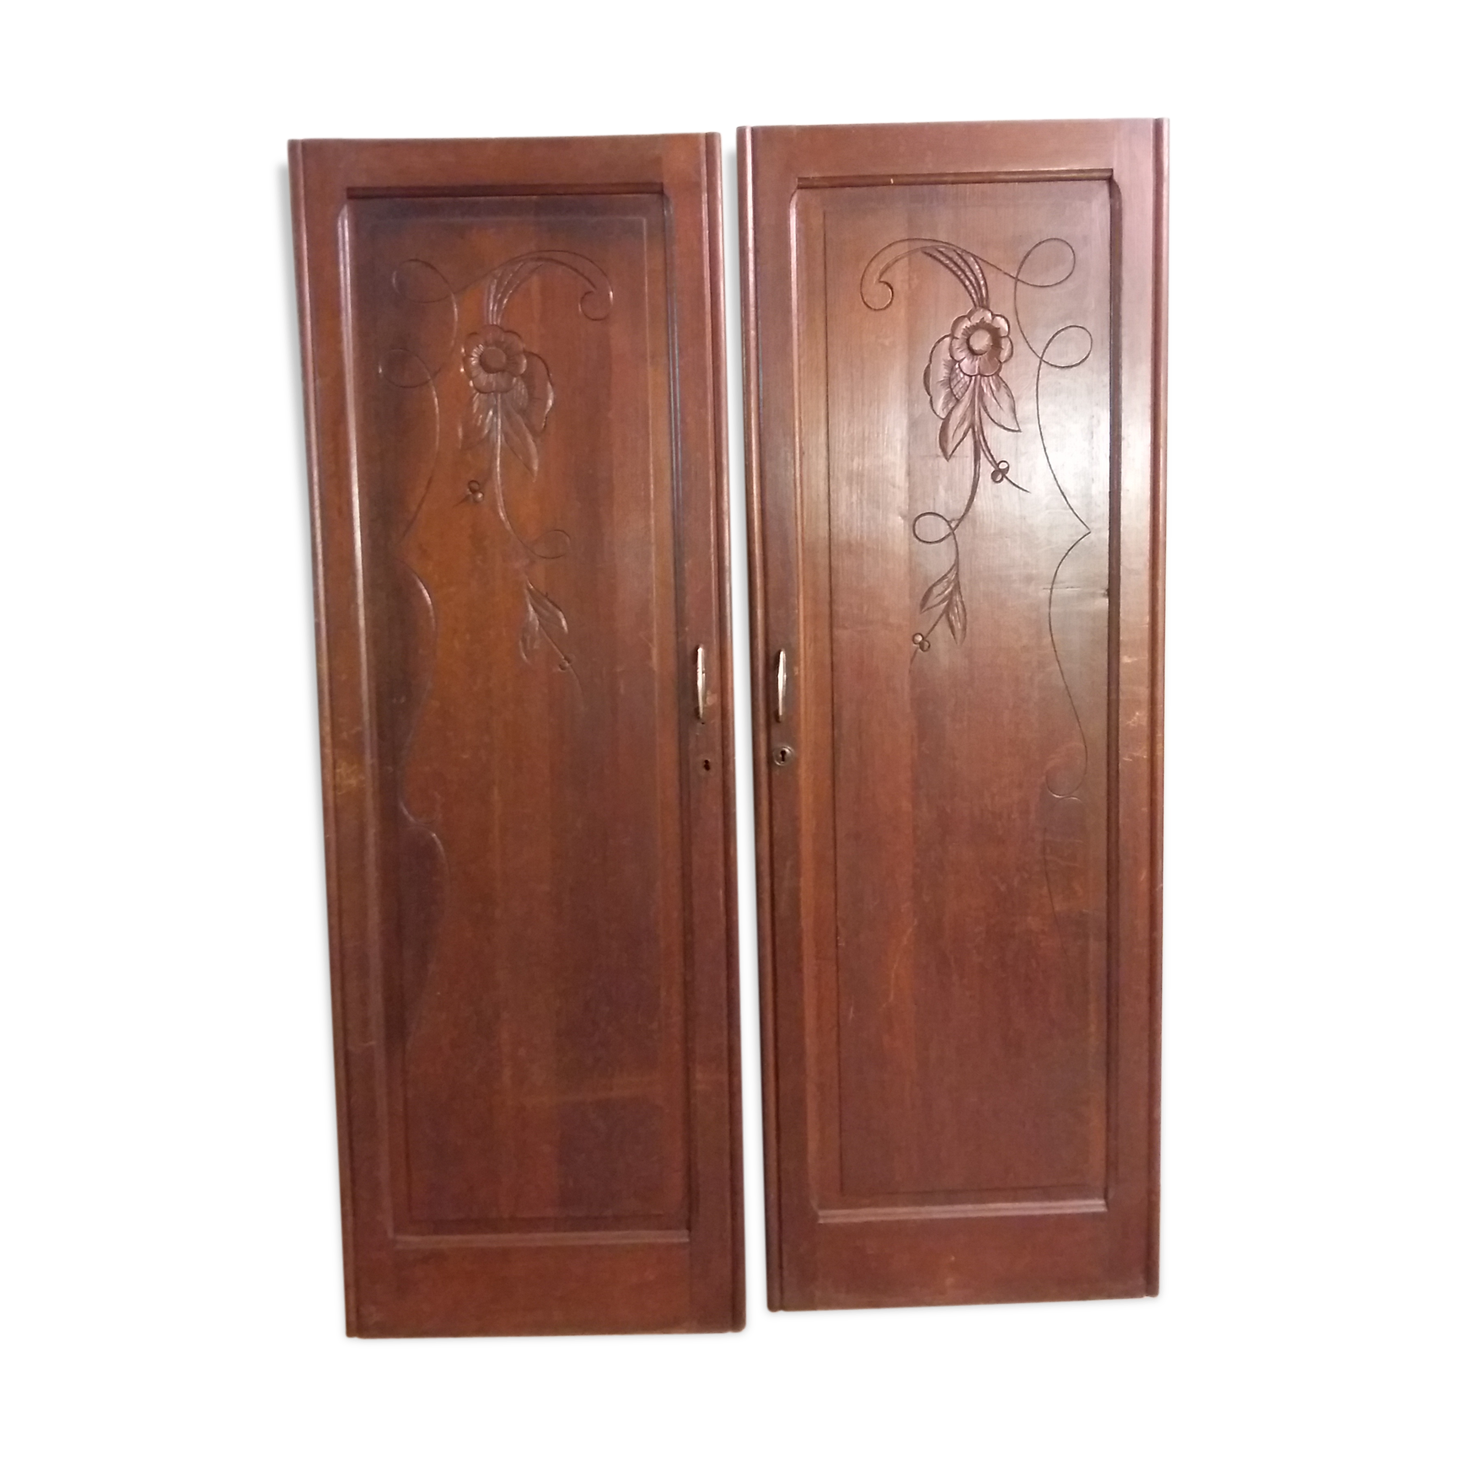 vieille porte en bois ancienne stunning blog dco design joli place with vieille porte en bois. Black Bedroom Furniture Sets. Home Design Ideas